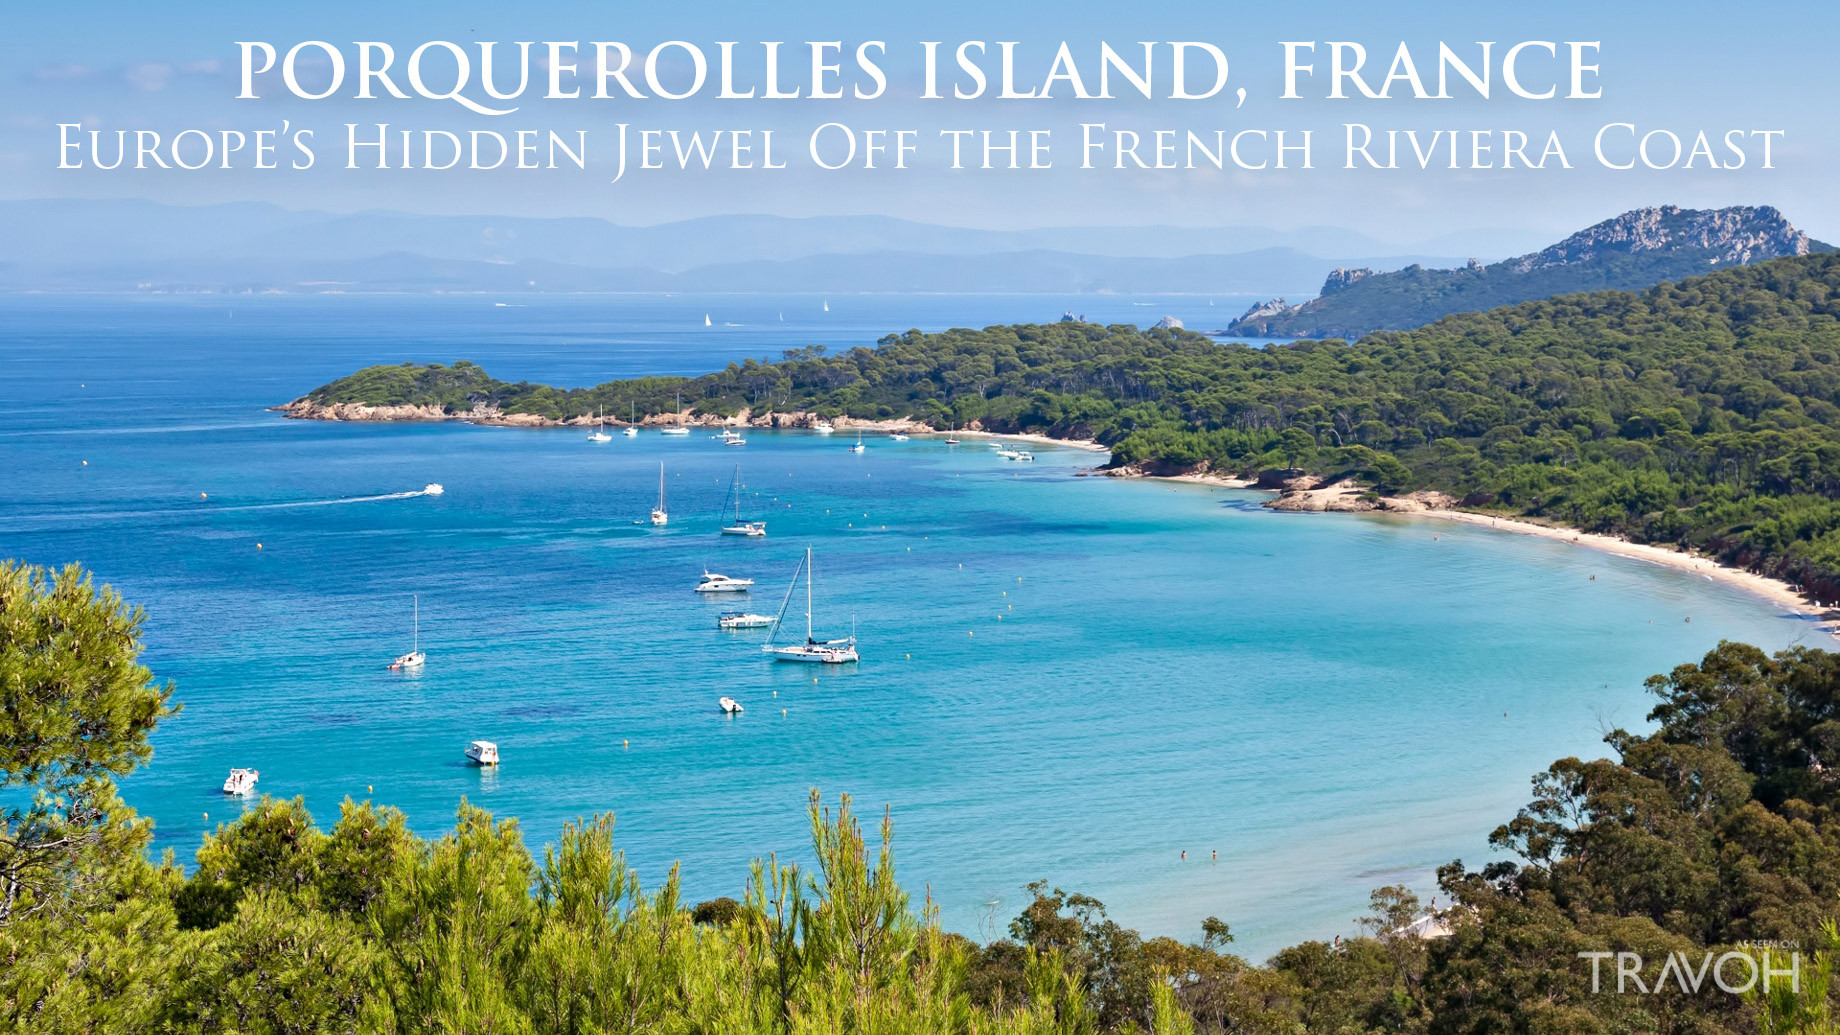 Porquerolles Island, France – Europe's Hidden Jewel Off The French Riviera Coast